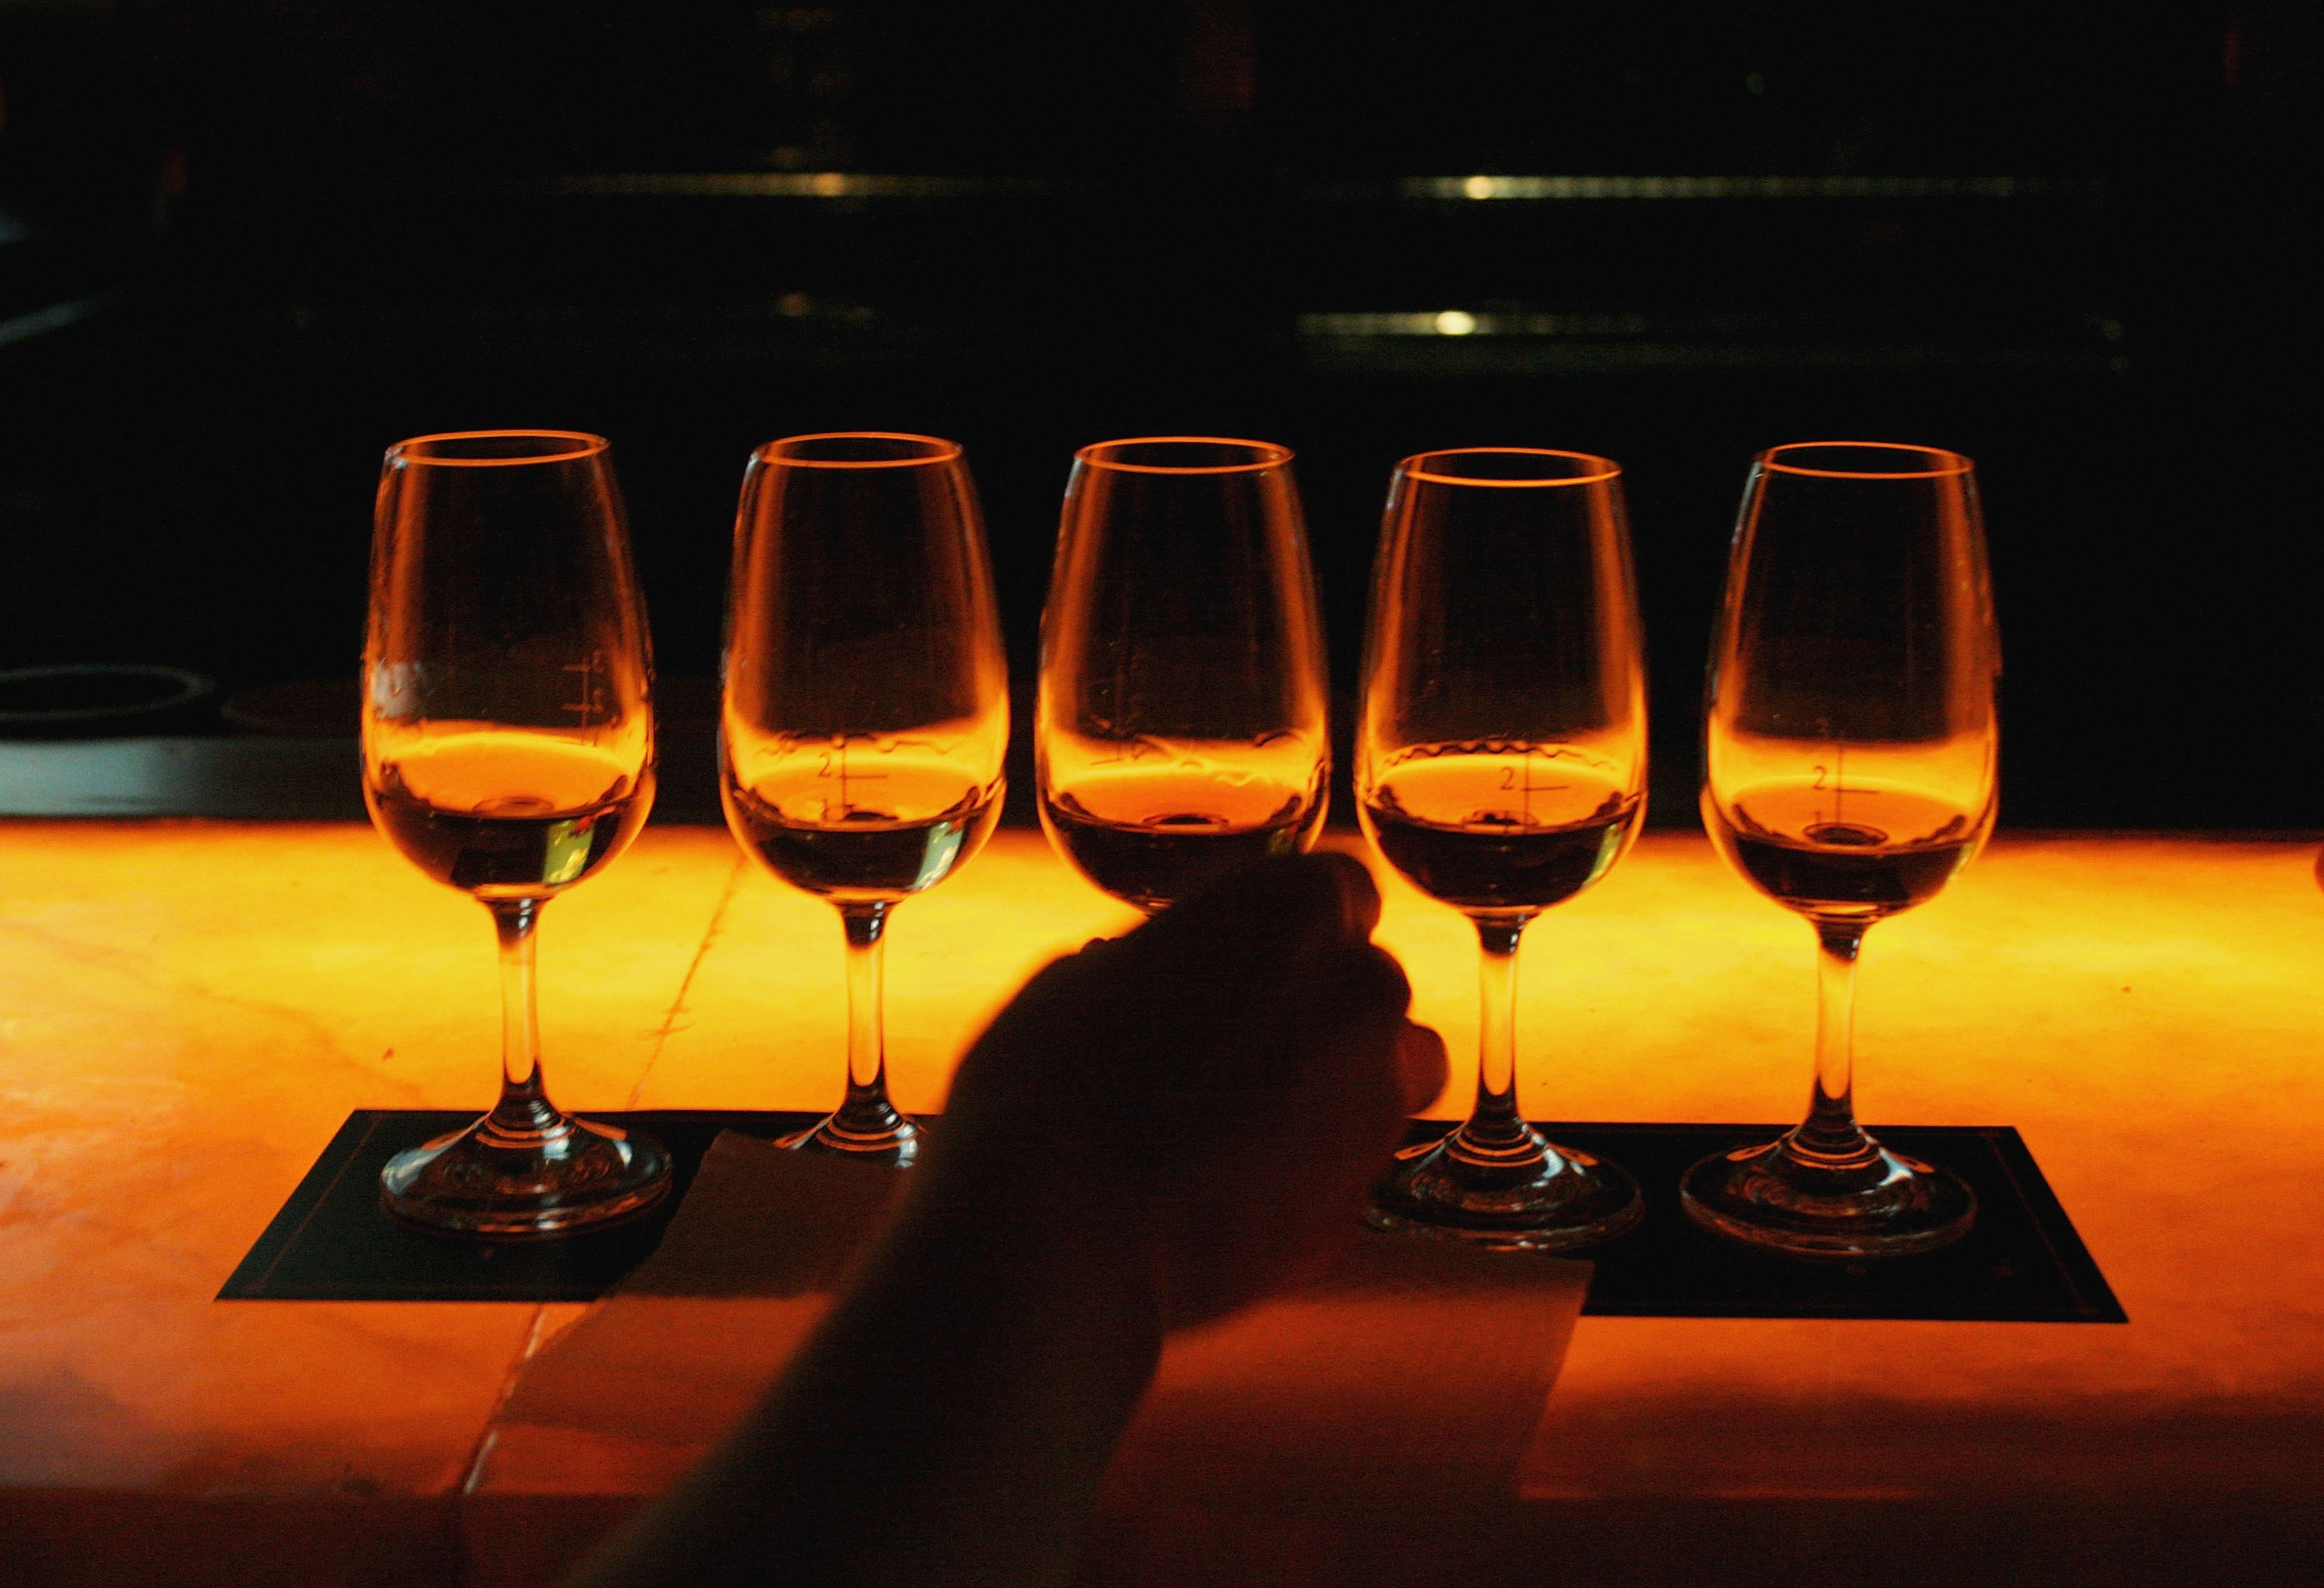 Best whisky list doesn't put Scotland brands at top